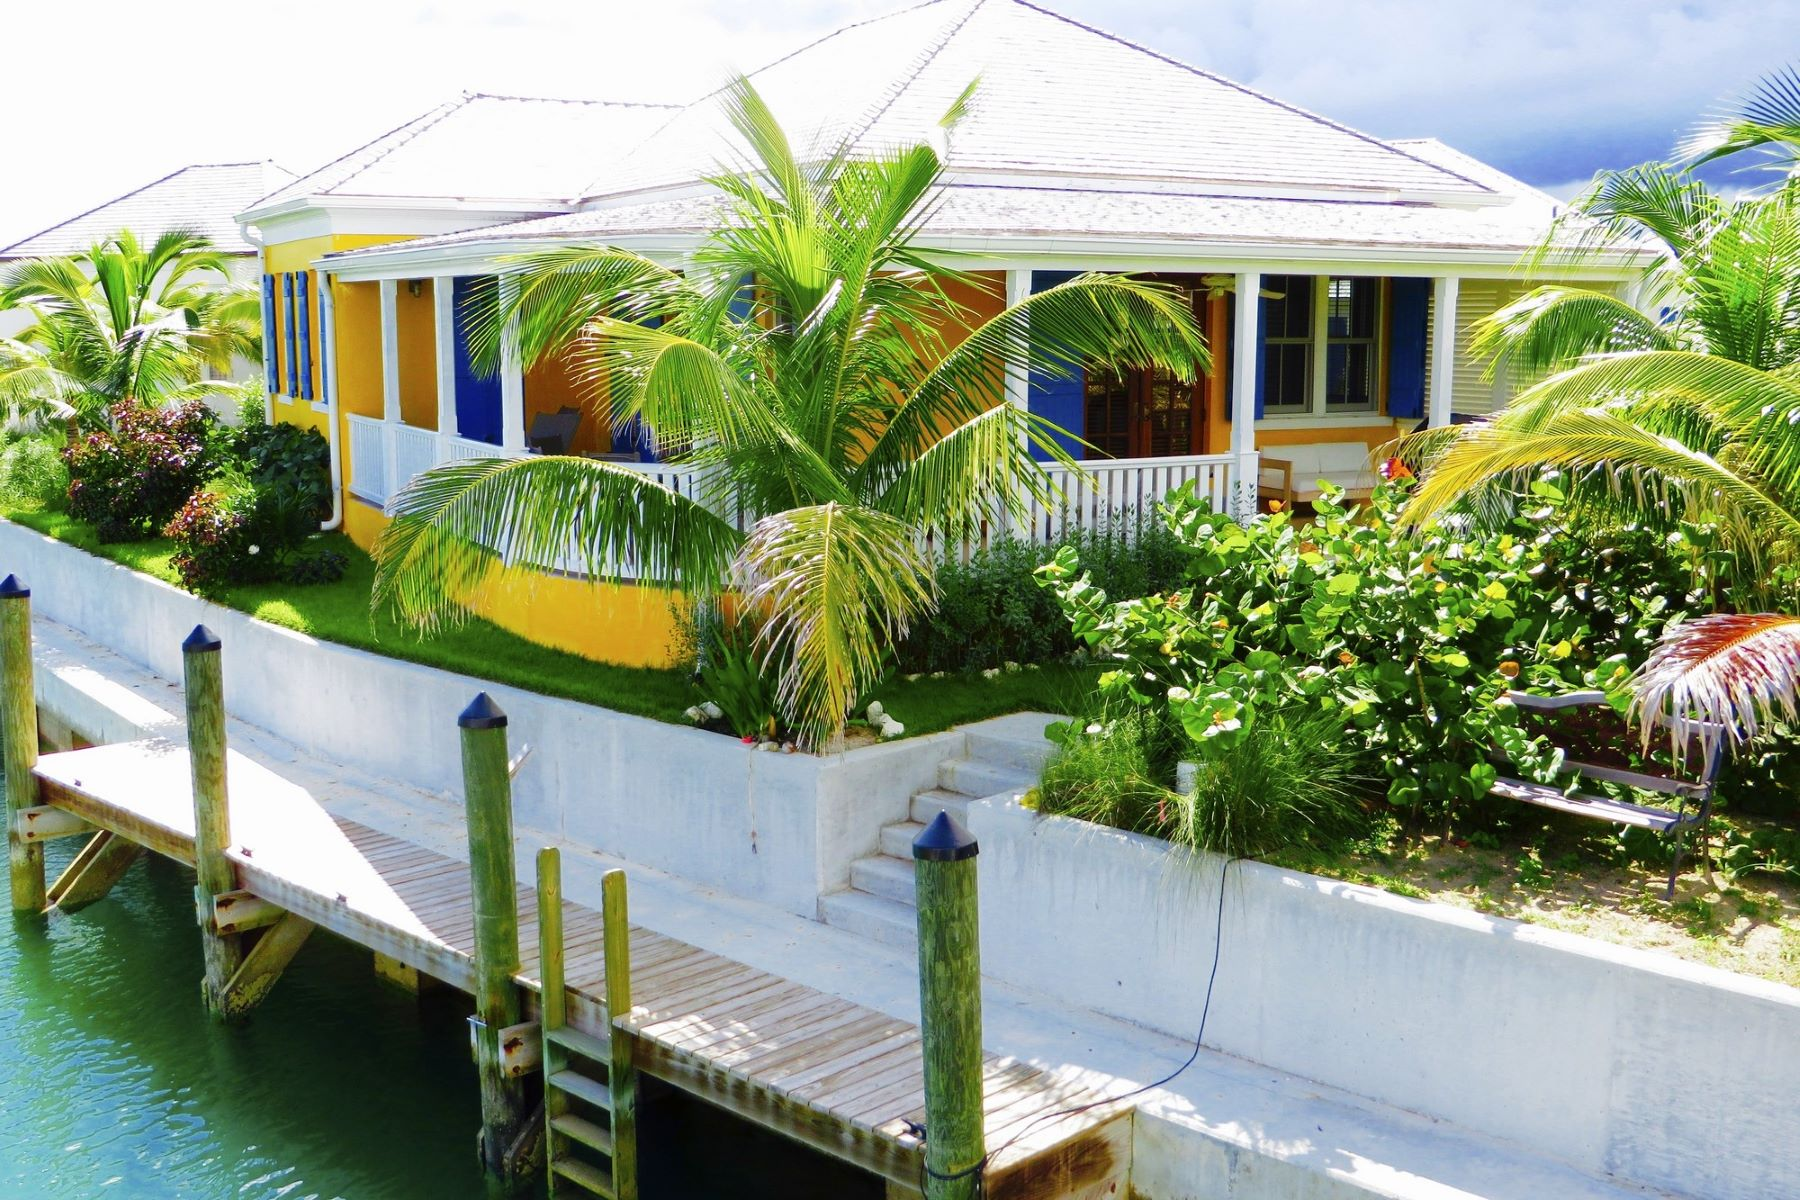 Single Family Home for Sale at EVER SUNWARD Cottage, The Island at Schooner Bay Village Schooner Bay, Abaco Bahamas